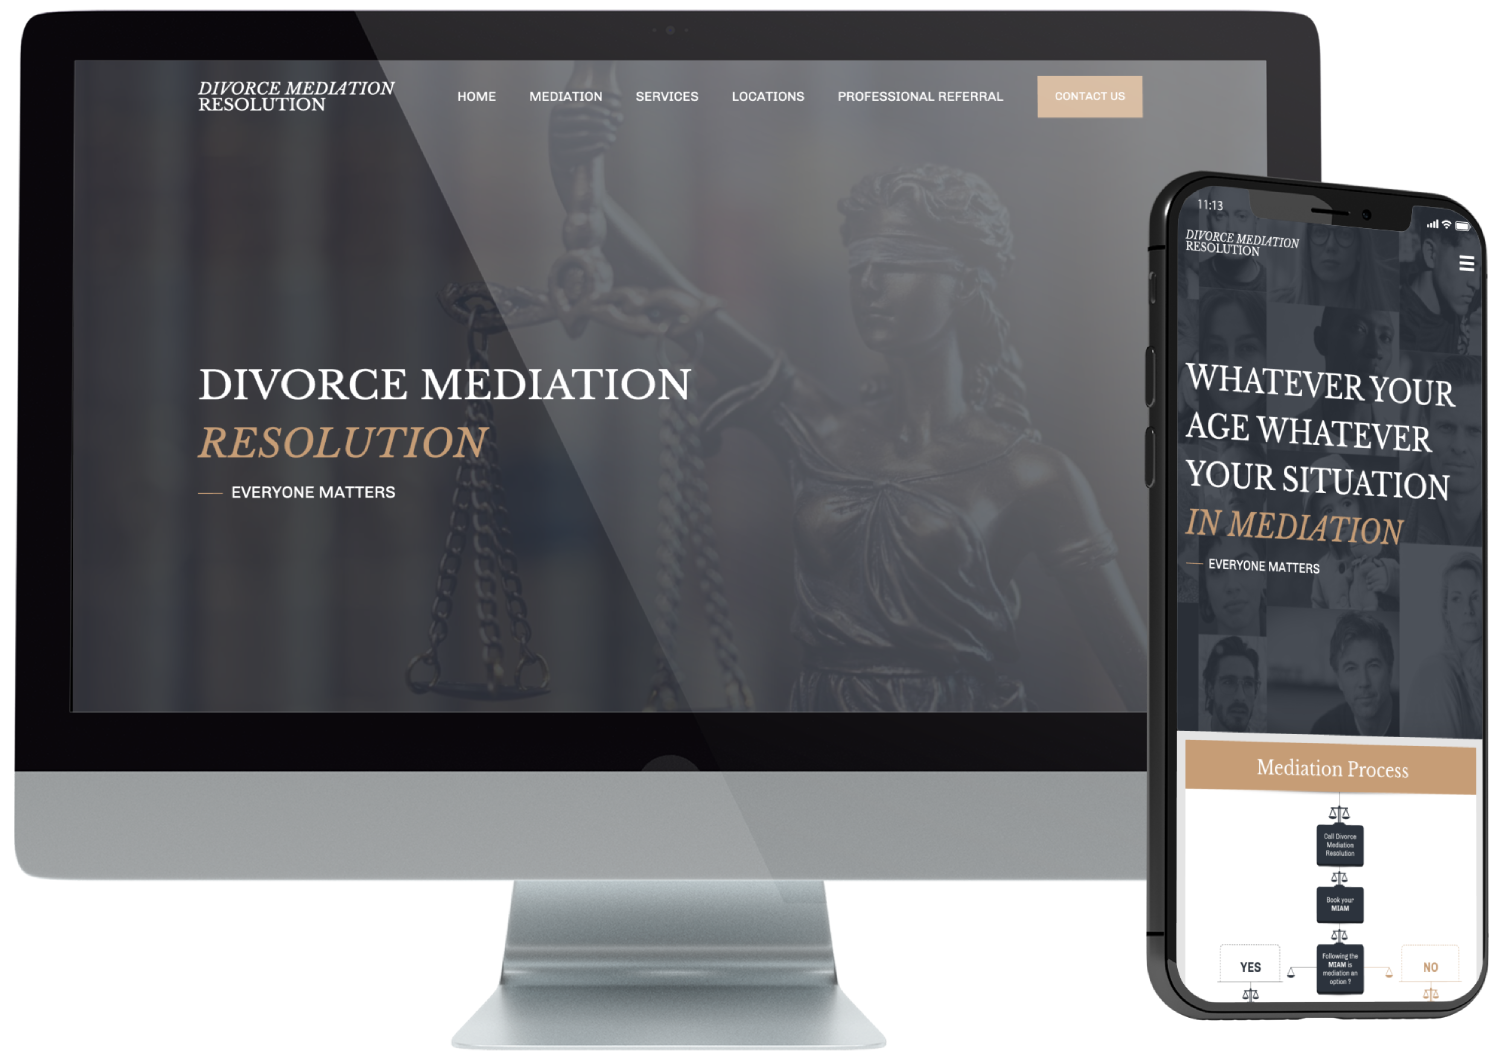 Divorce Mediation Resolution